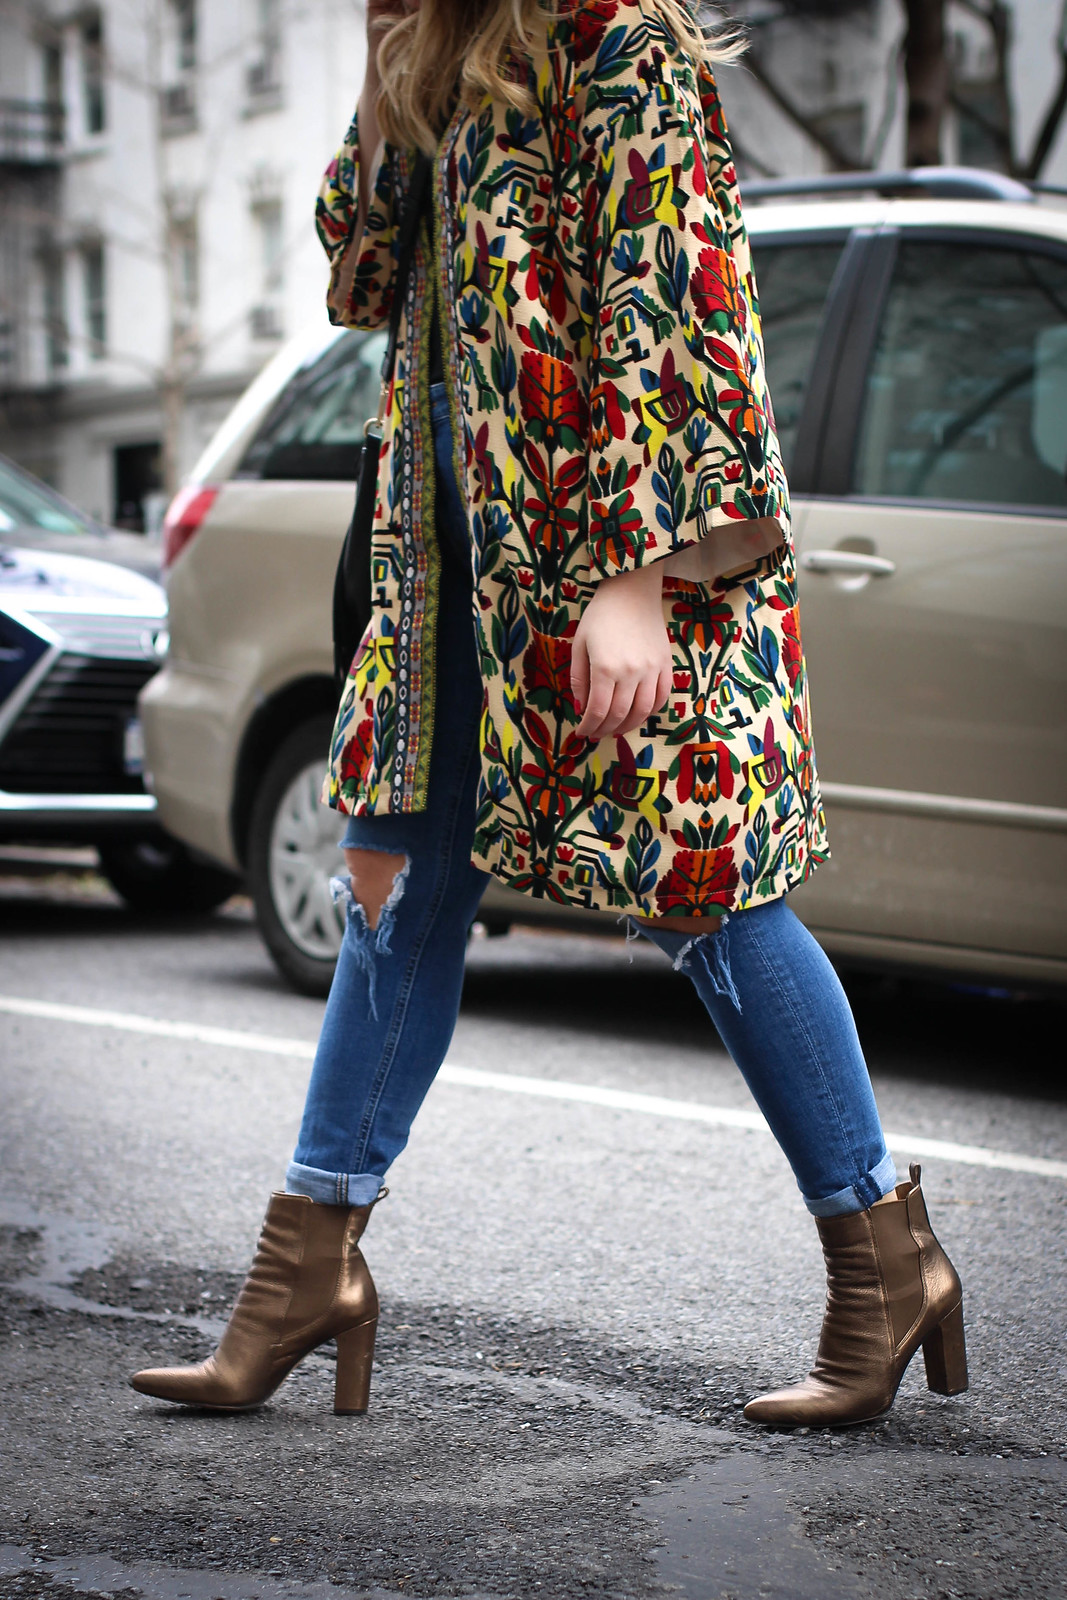 New York City Street Style Colorful Overcoat Distressed Denim Bronze Booties Spring Fashion Outfit